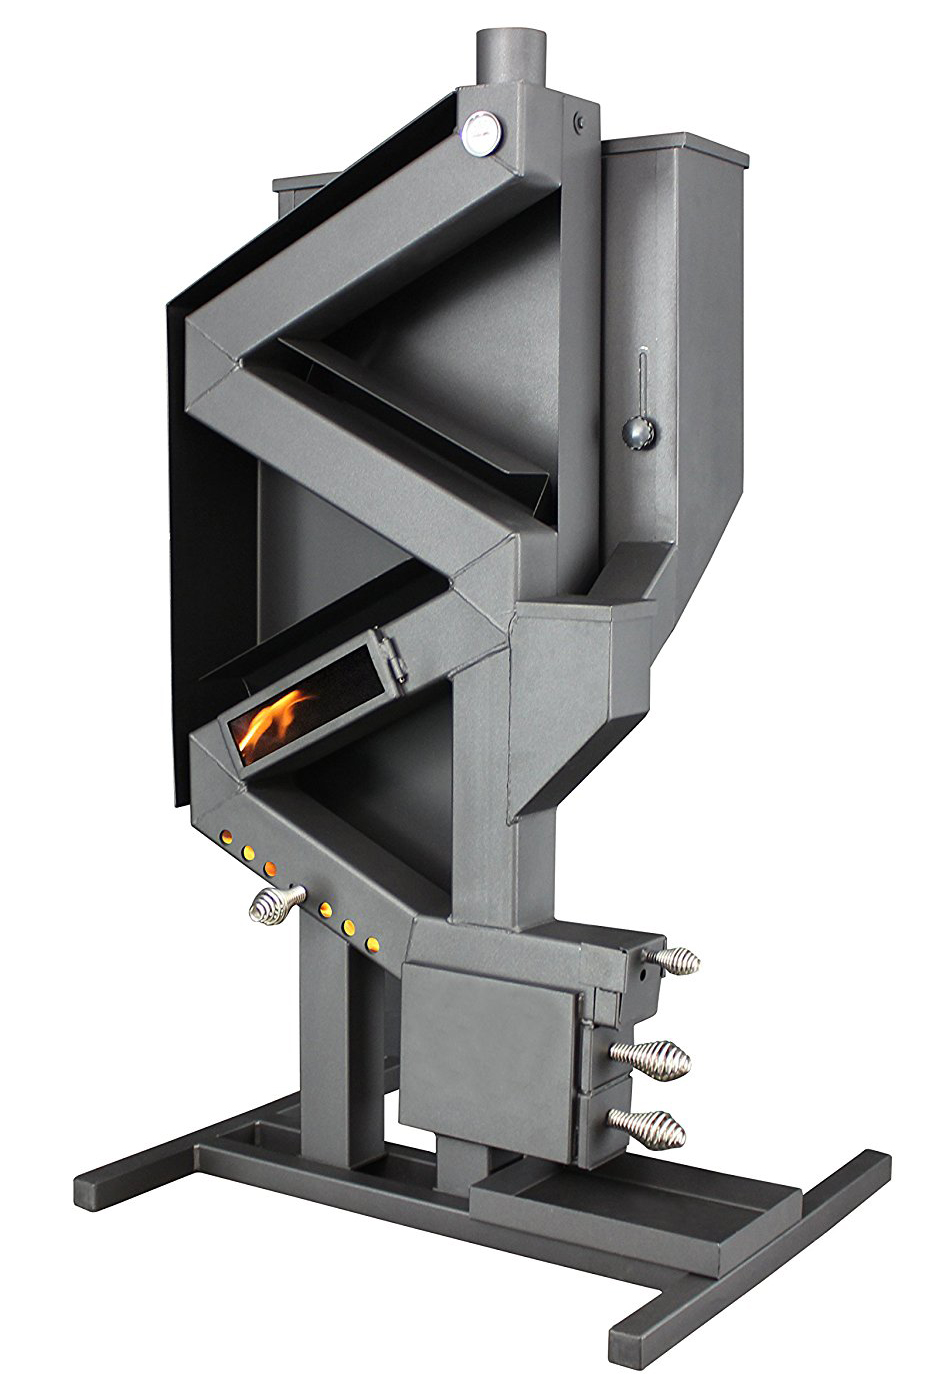 Us Stove Gravity Feed Non Electric Wiseway Pellet Stove Us